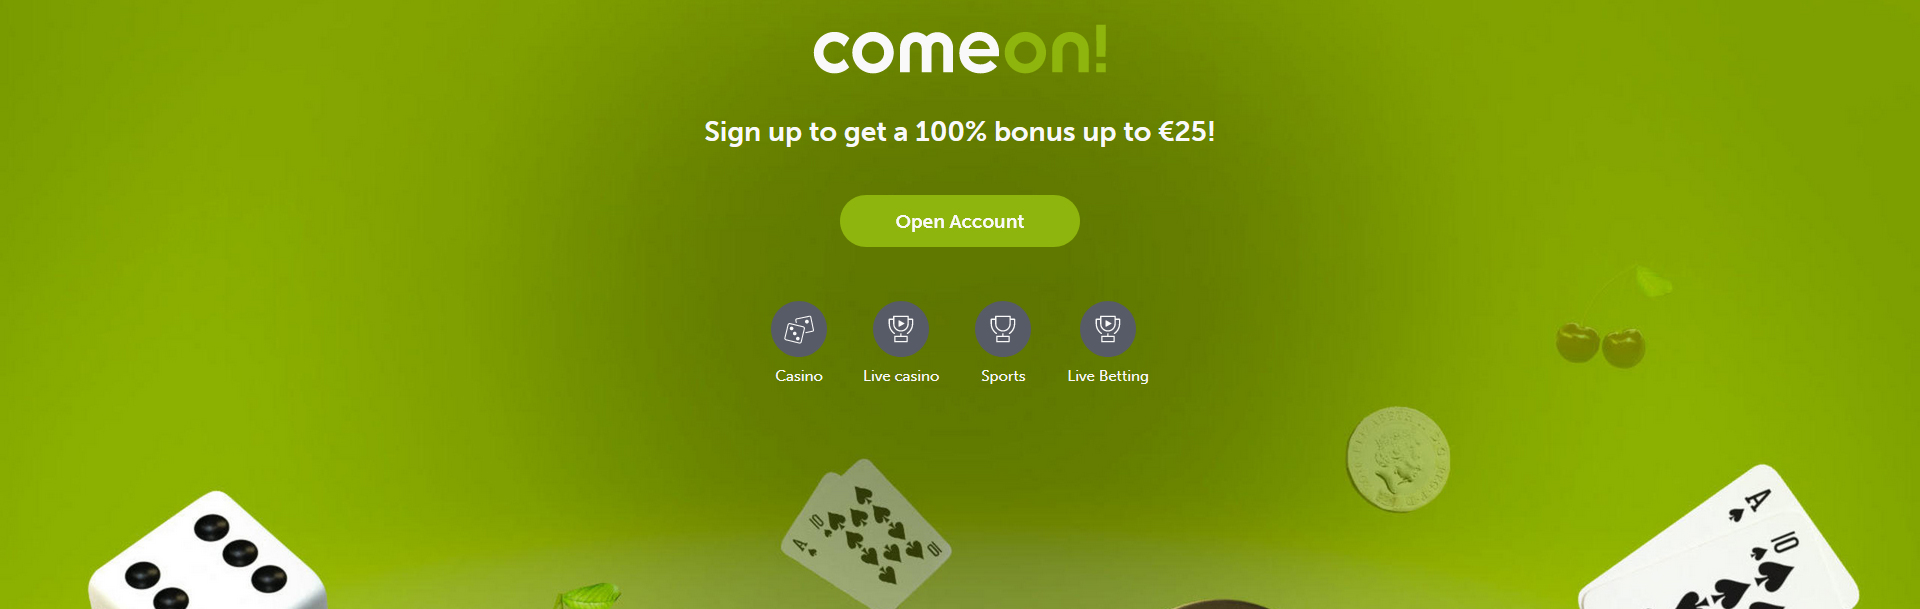 Screenshot ComeOn casino.